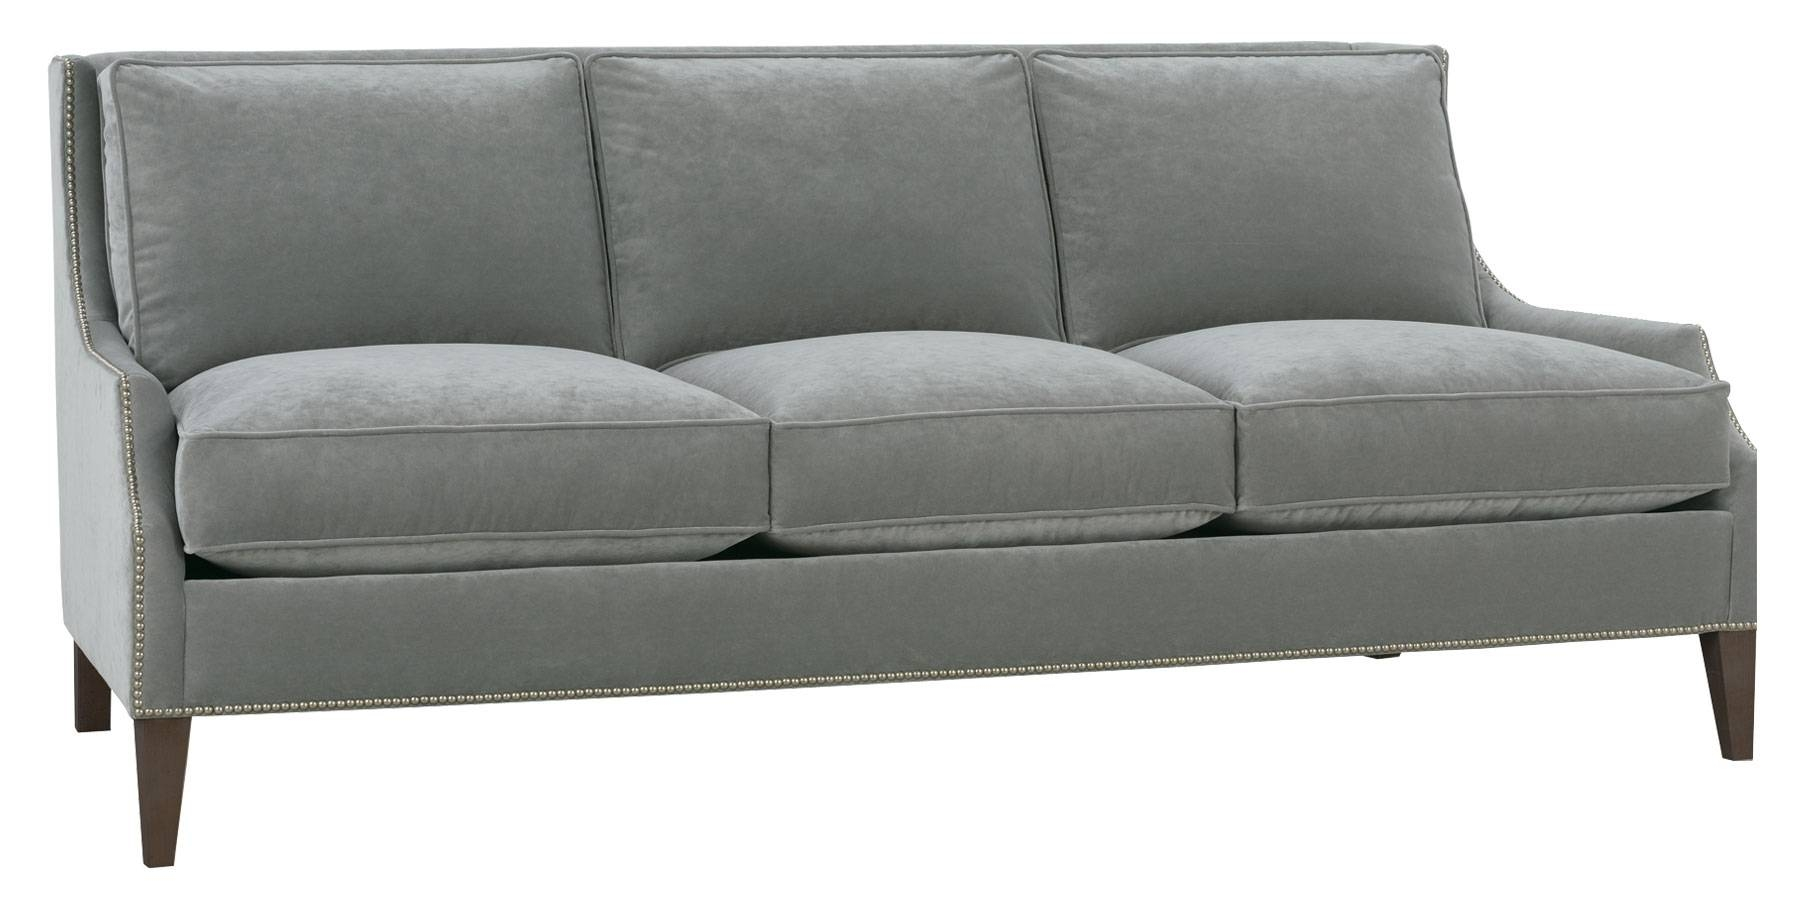 sectional sofas for apartments best wooden furniture sofa set 30 43 of apartment size and sectionals